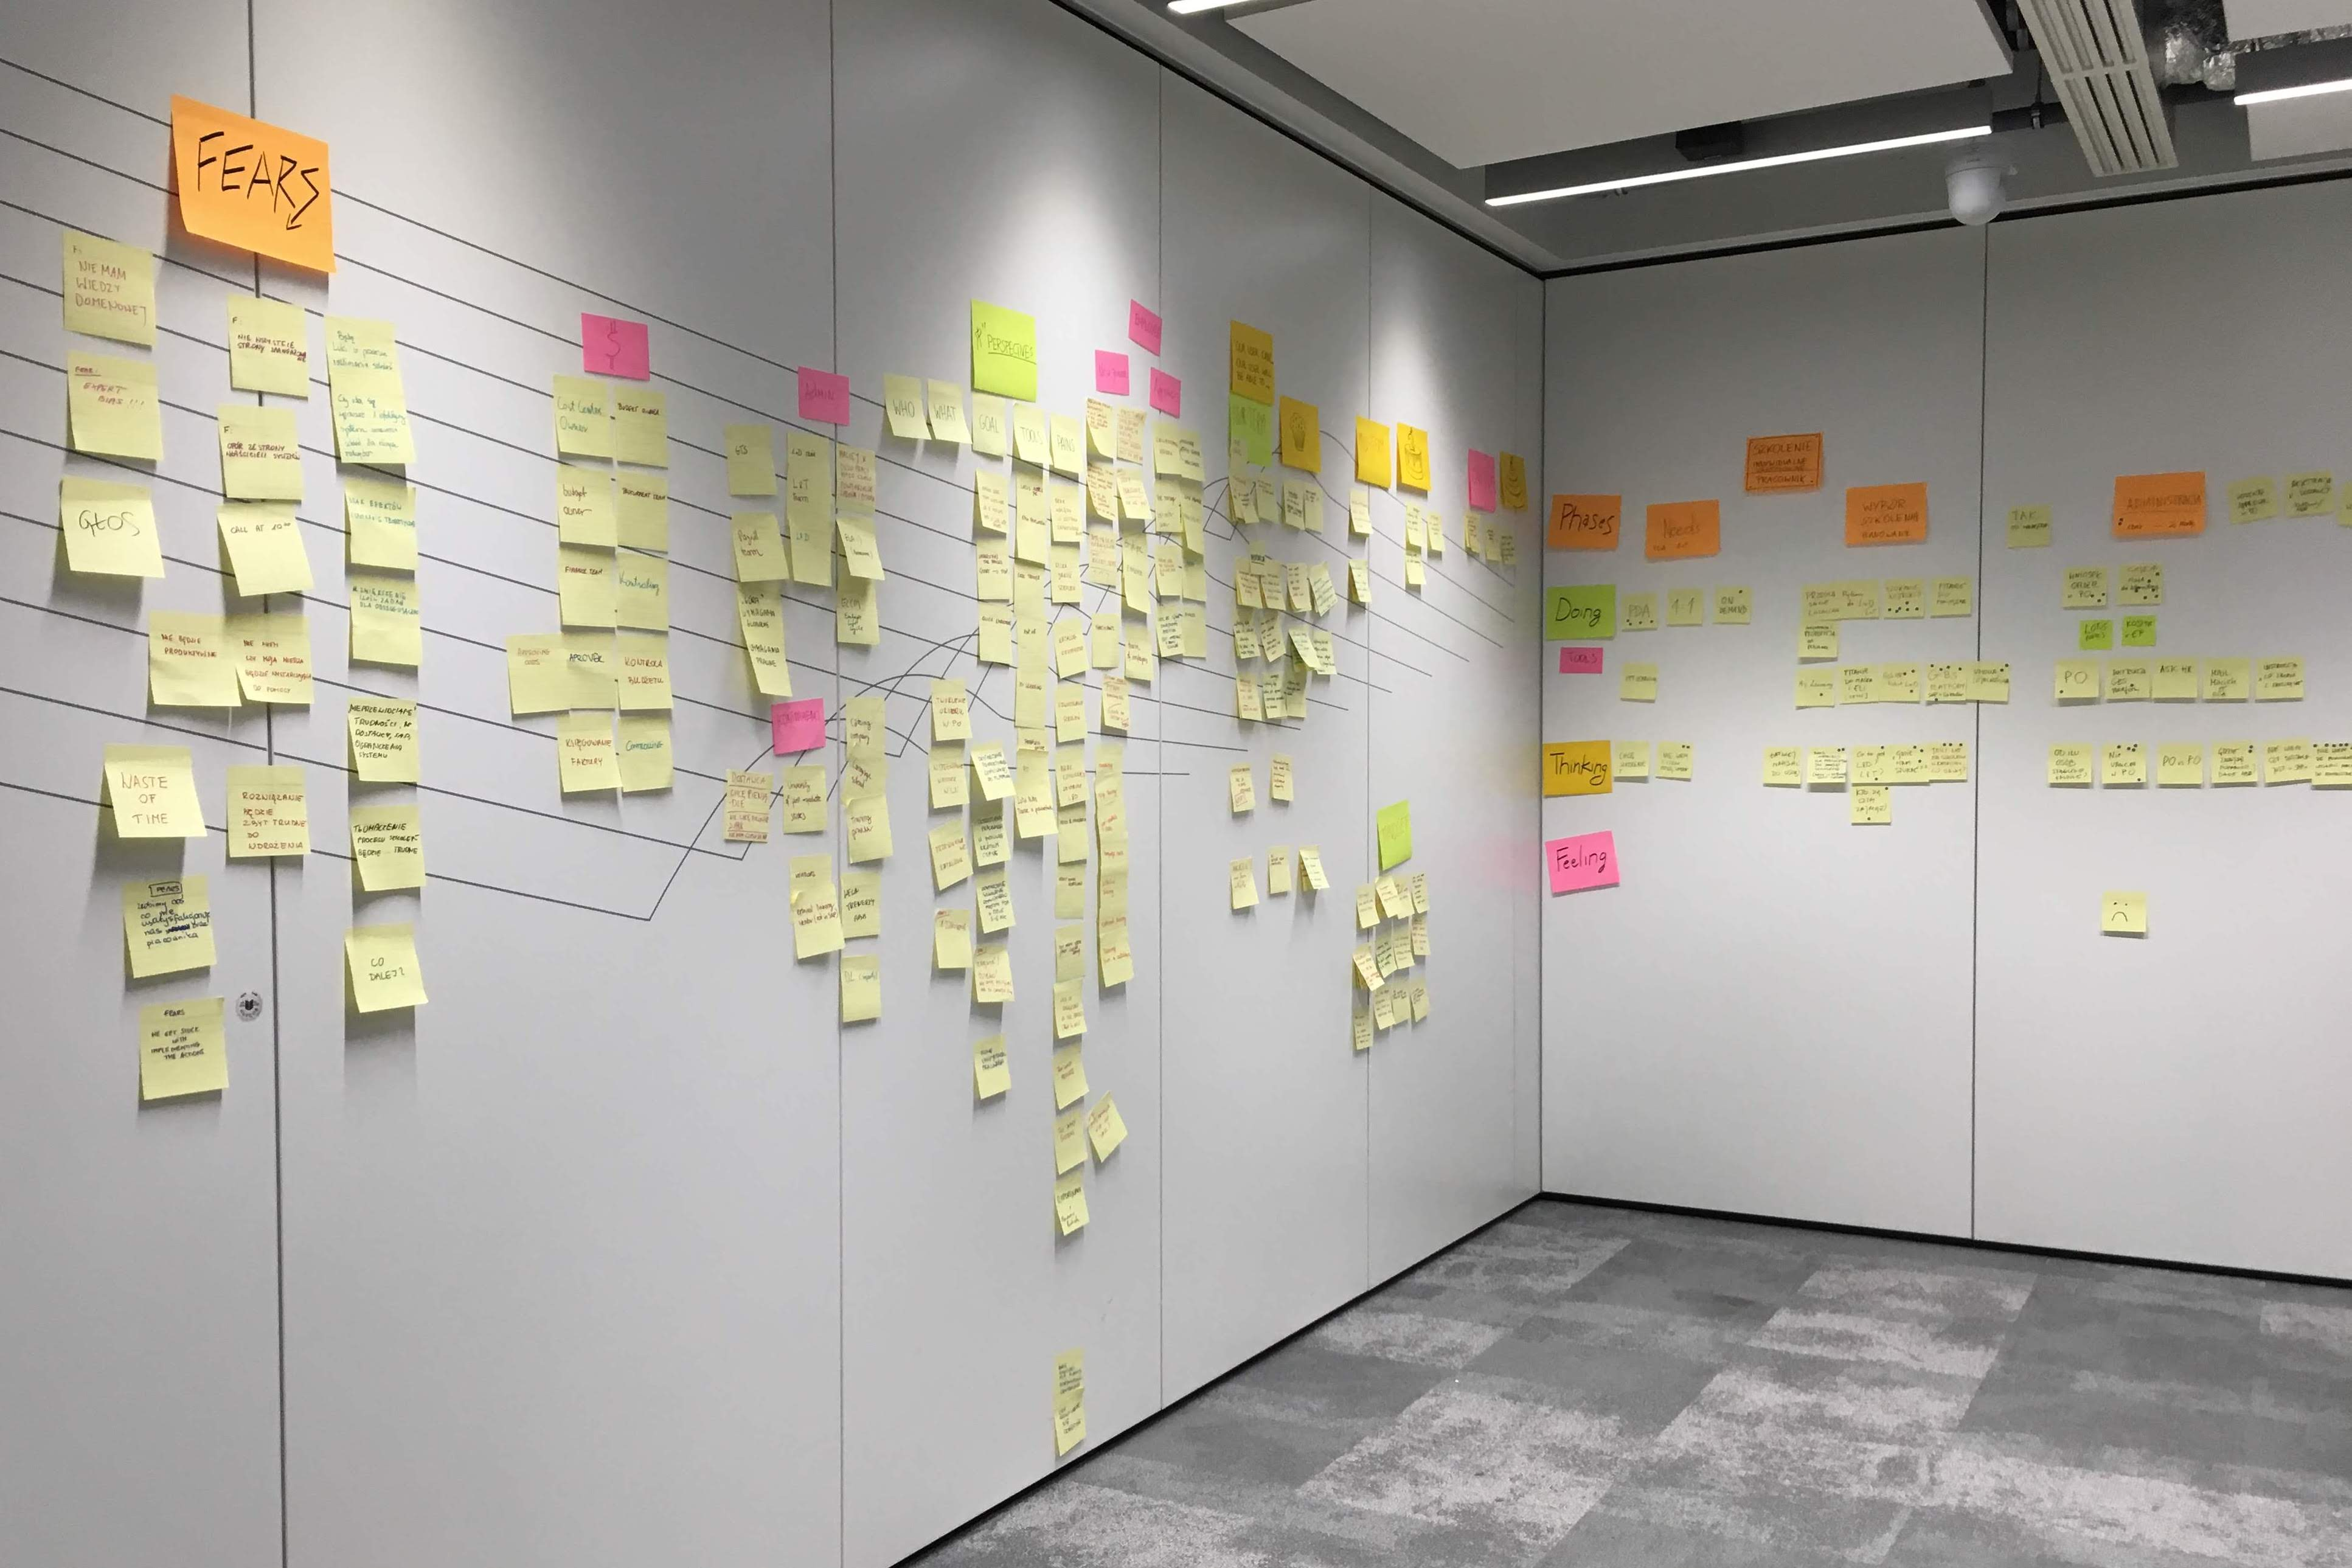 Photo from workshop. Walls with a lot of sticky notes.